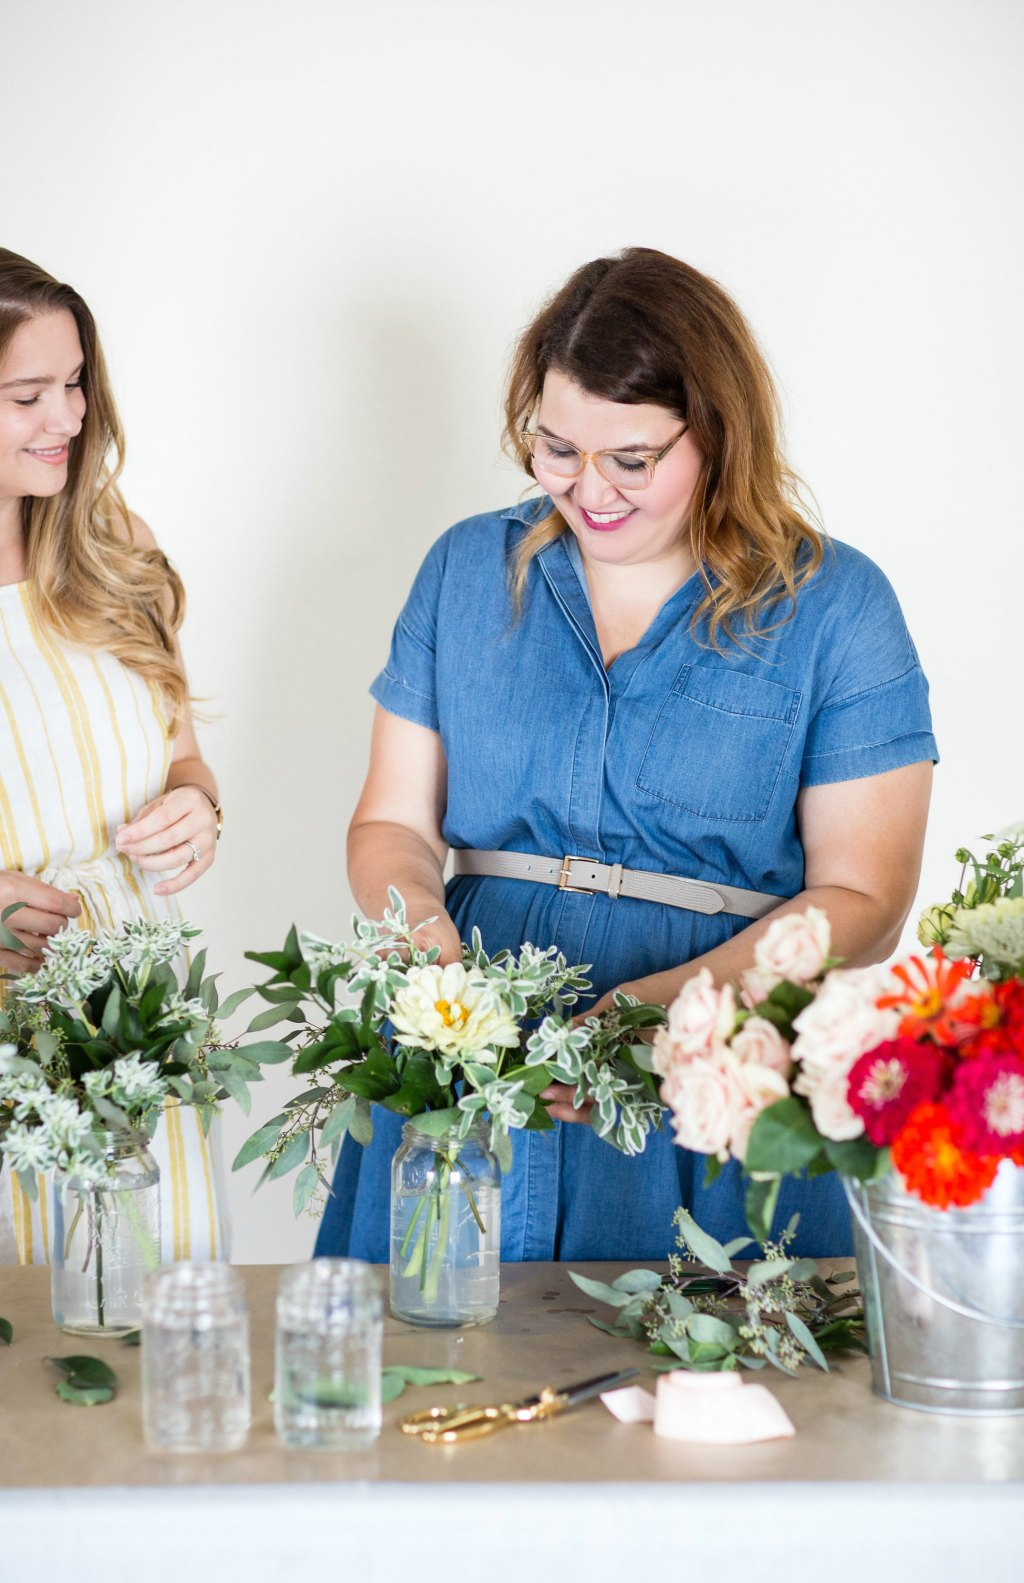 how-to-style-a-simple-flower-arrangement-rose-city-style-guide-bourbon-rose-floral-design-co-lifestyle-canadian-blog-12